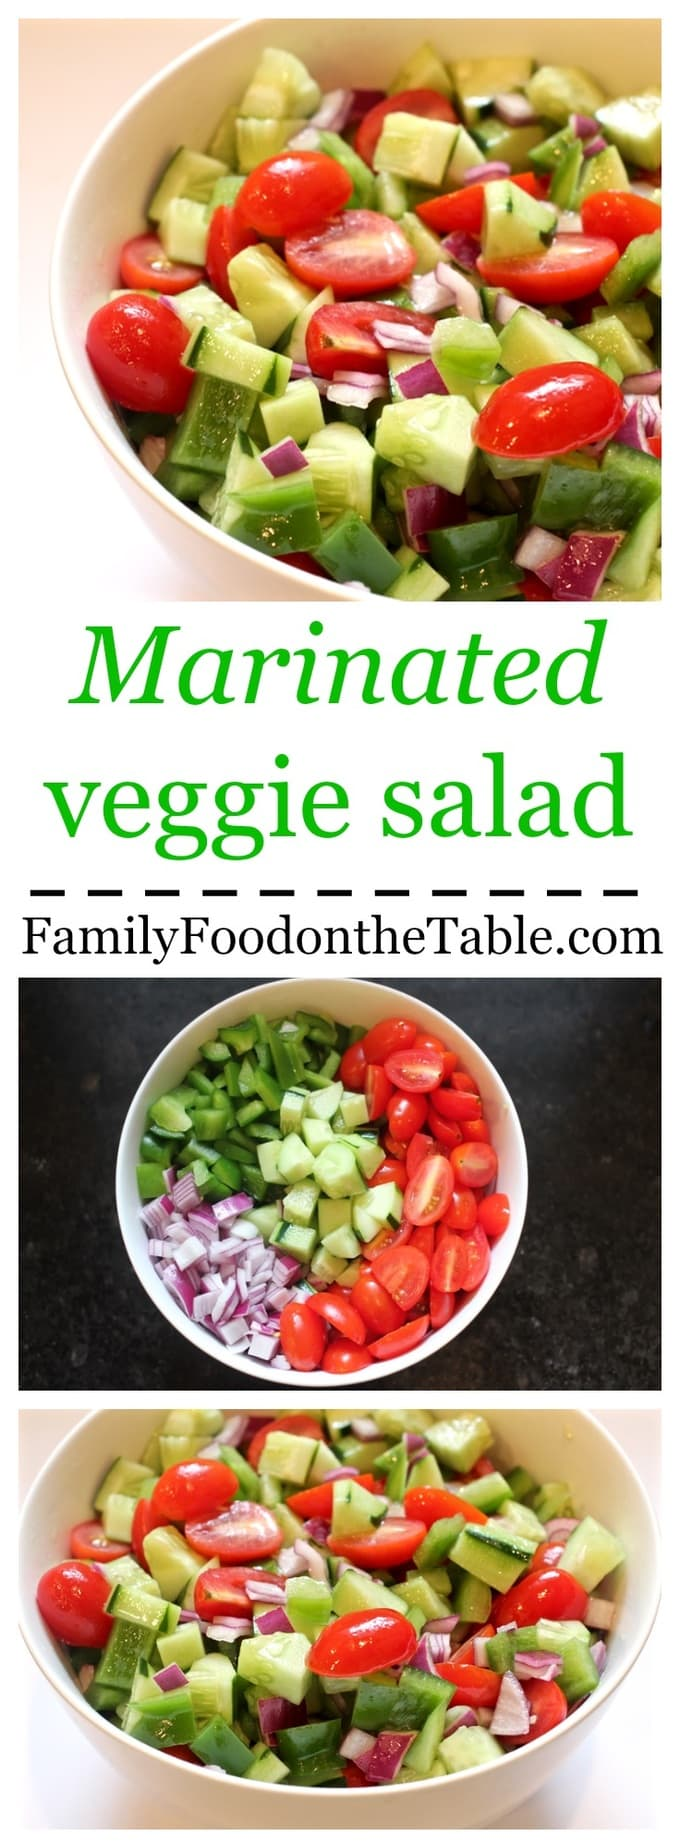 A bright, fresh marinated veggie salad with cucumbers, peppers and tomatoes - perfect for summer picnics and BBQ parties!